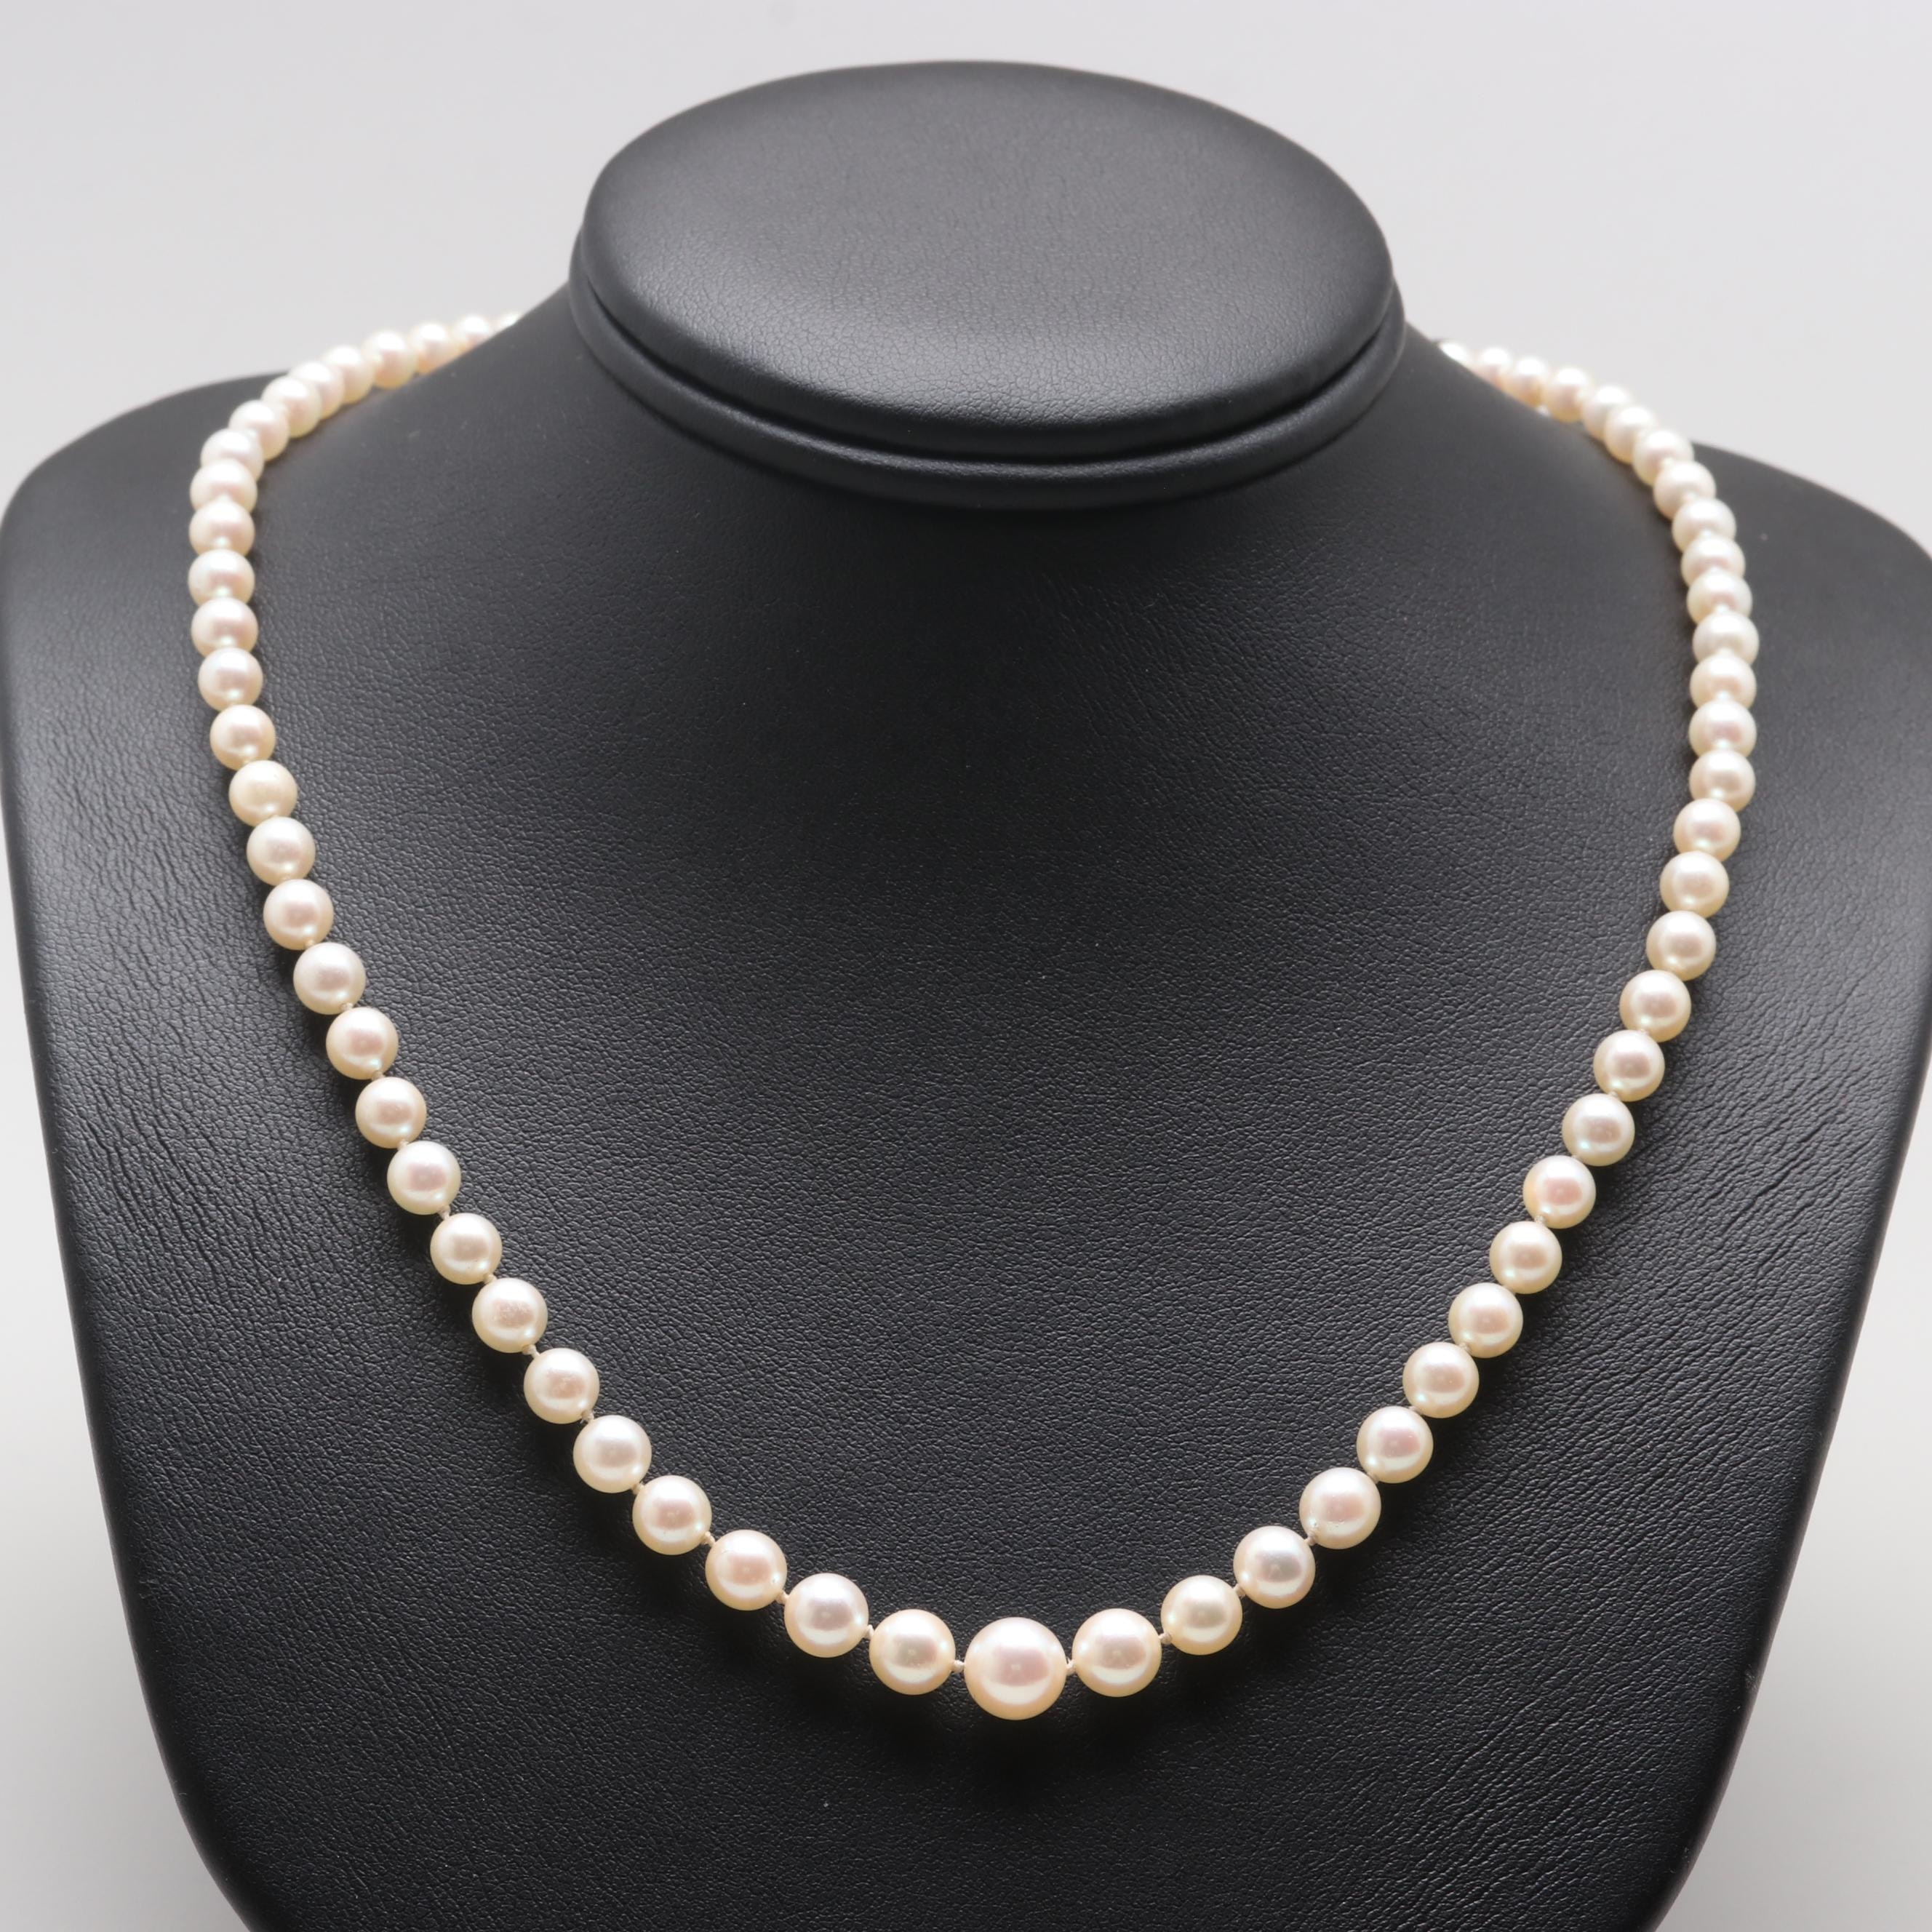 14K White Gold Cultured Pearl Beaded Necklace